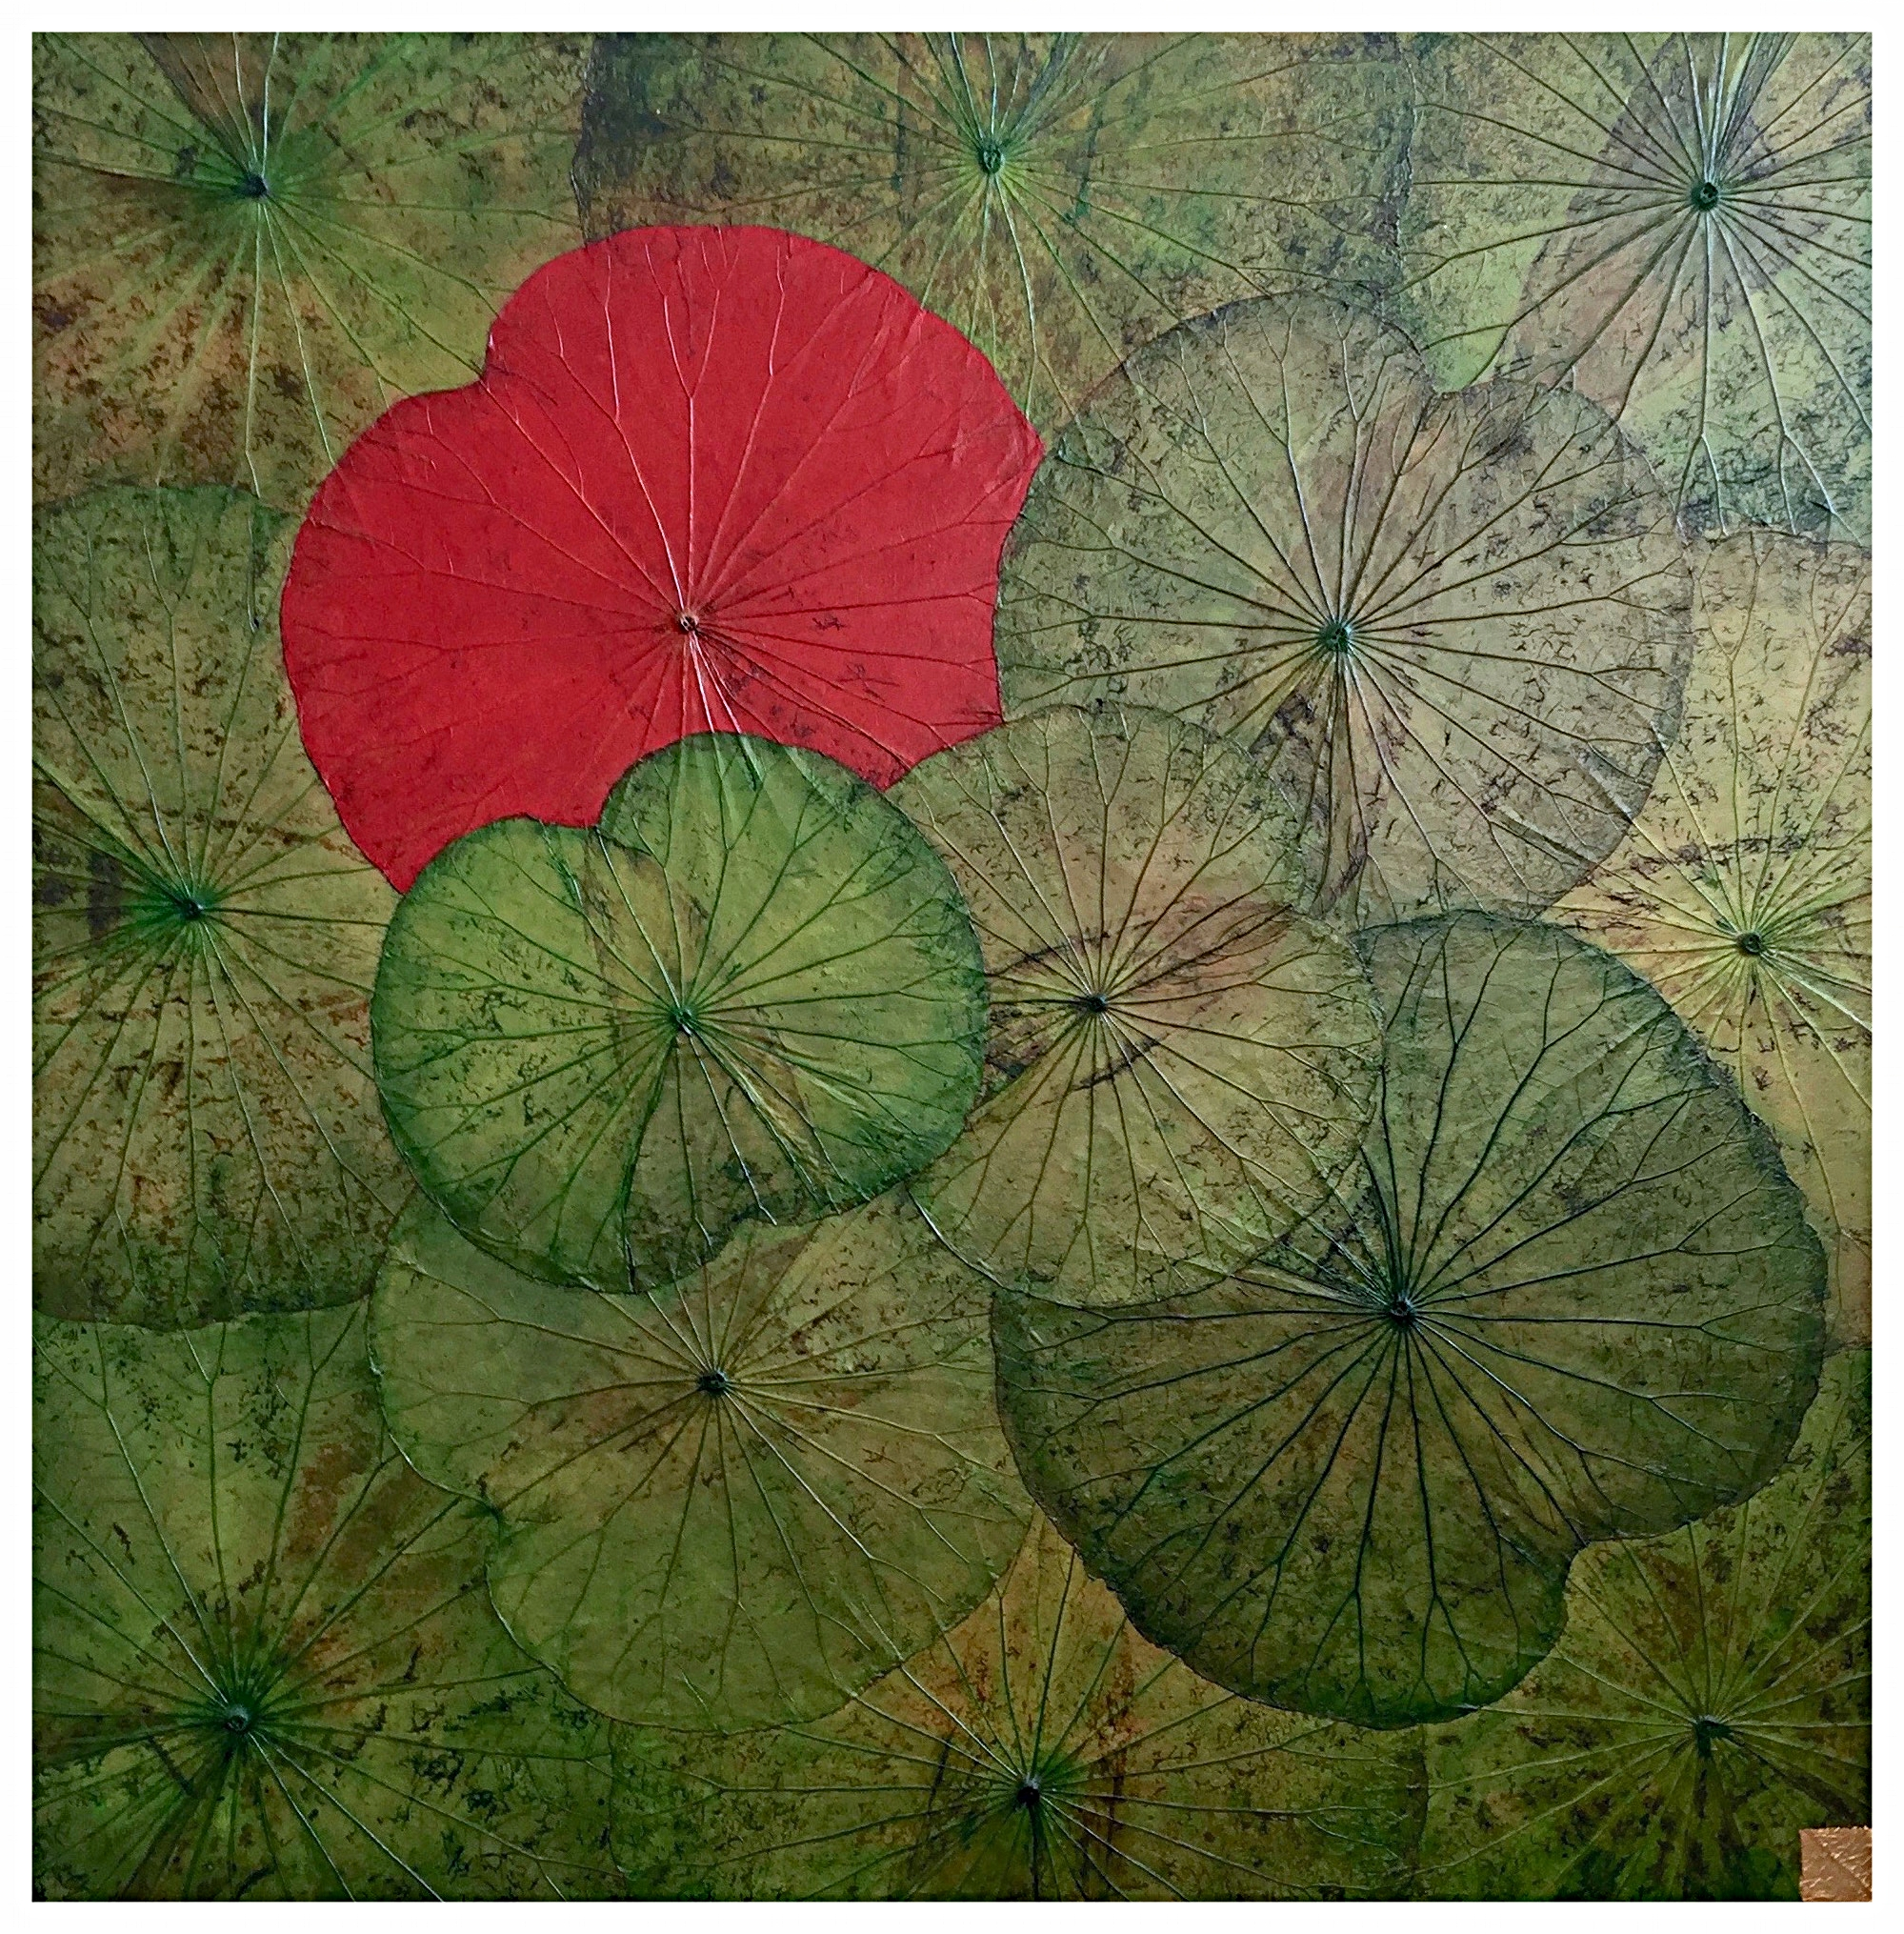 10 (Oct'15) 100x100 Green with Red Dot.jpg